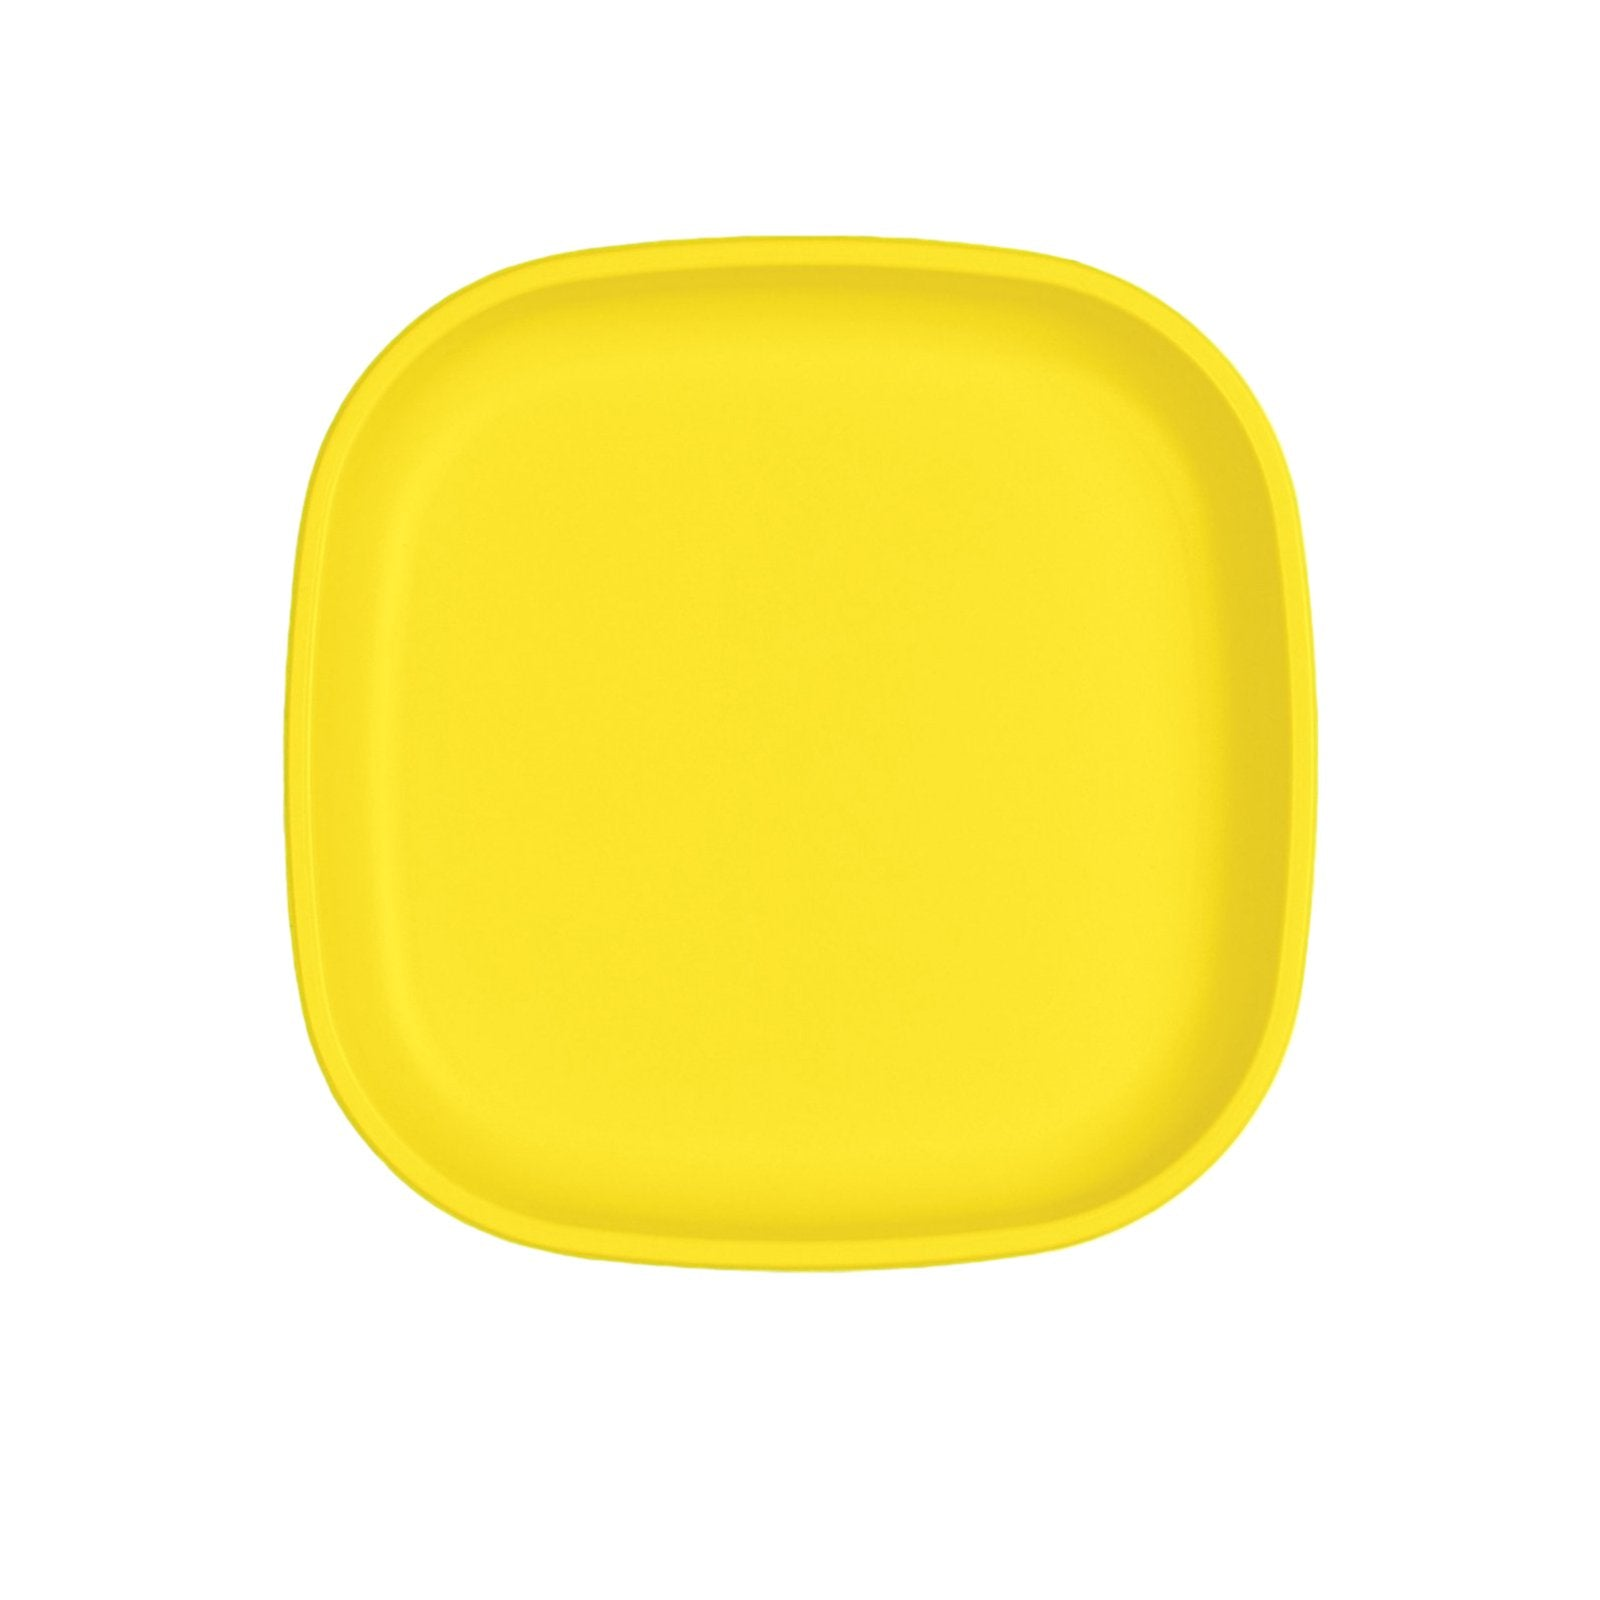 Replay Large Plate Replay Dinnerware Yellow at Little Earth Nest Eco Shop